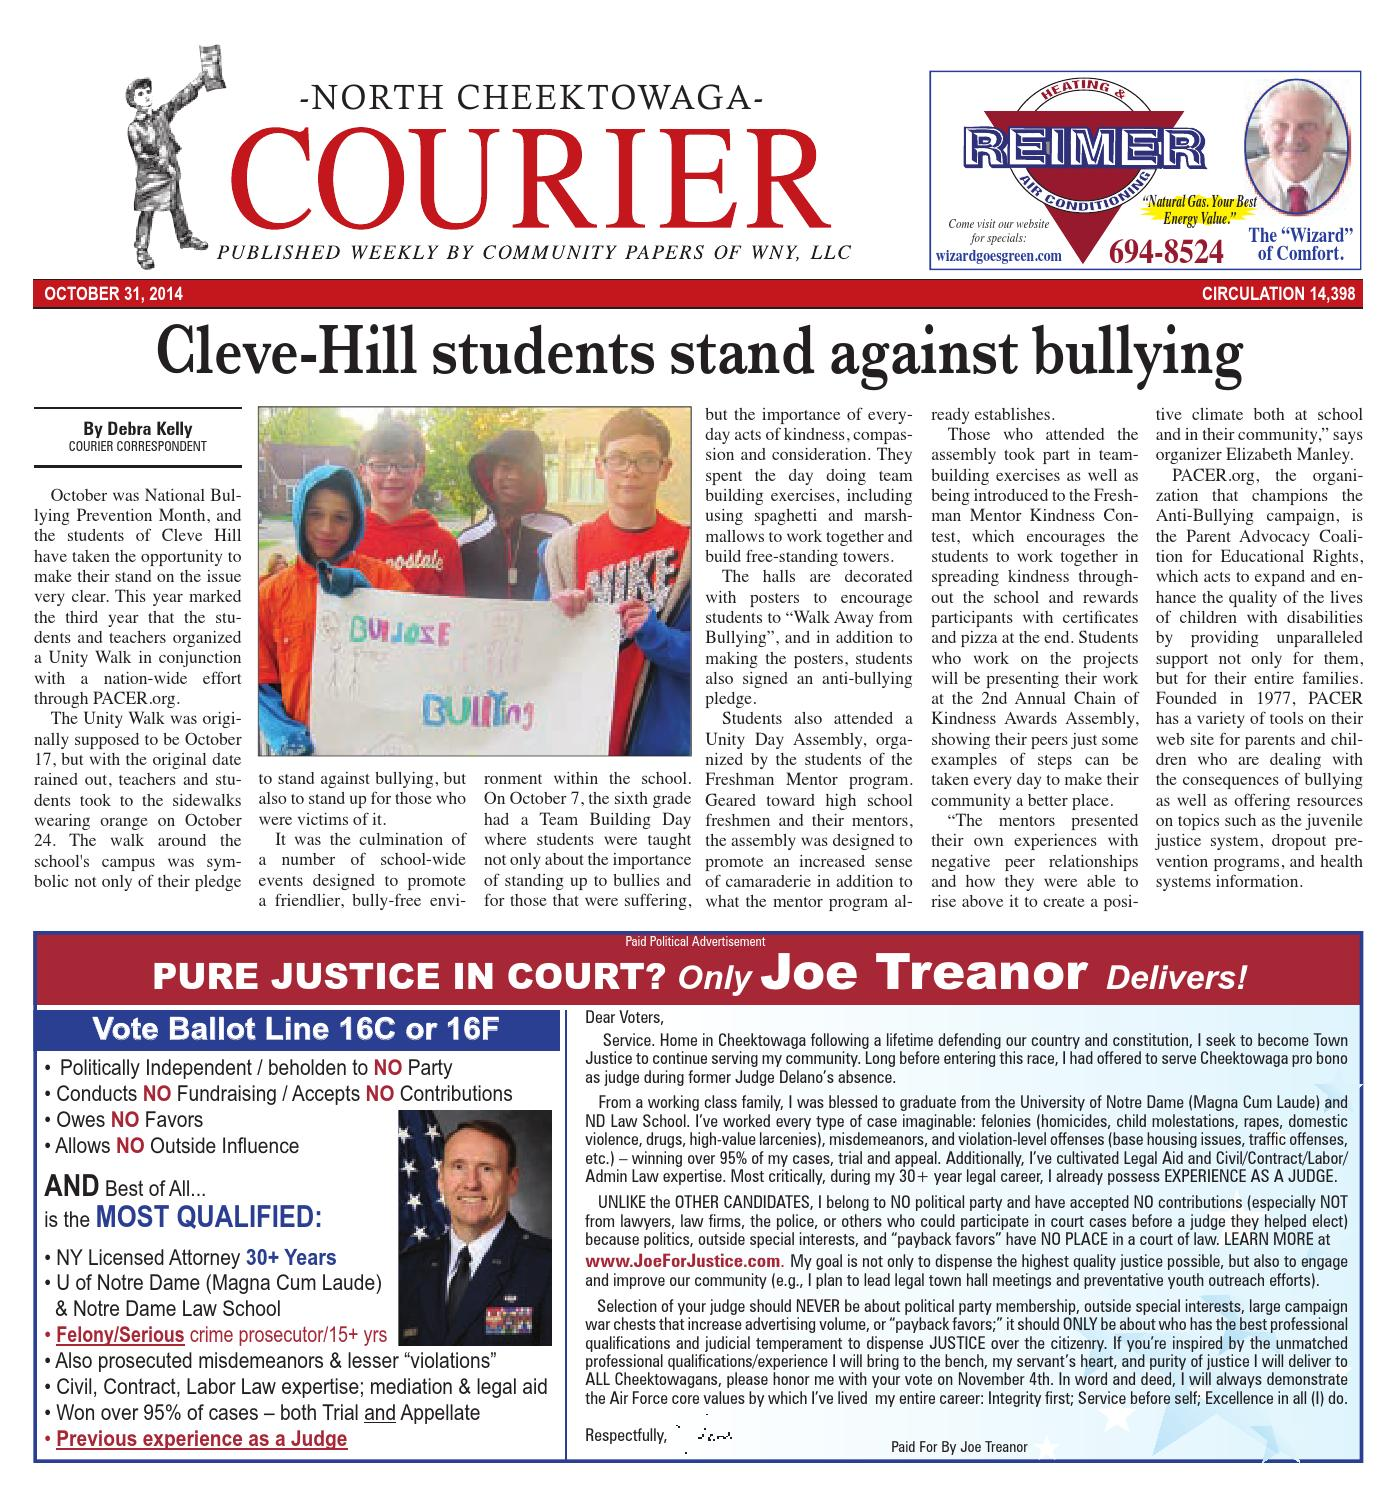 North cheektowaga courier 11 02 2014 by Community Papers of WNY issuu